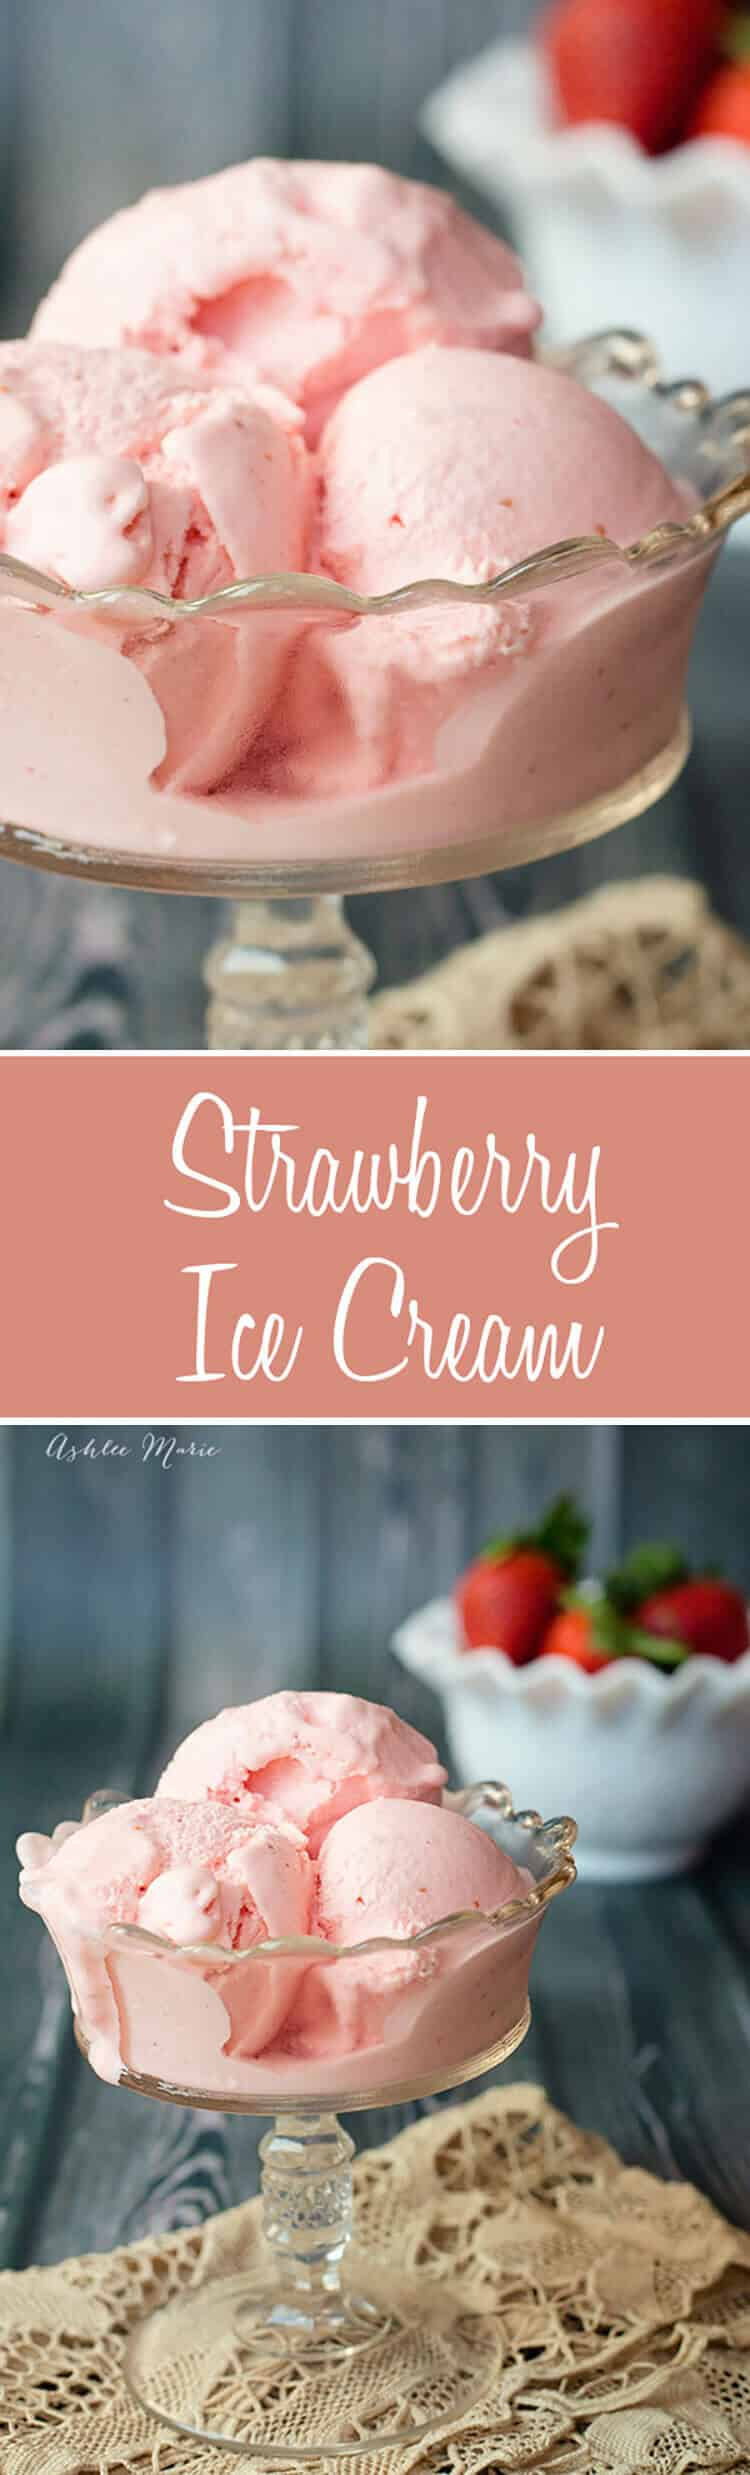 The Best Strawberry Ice Cream You Will Ever Have Creamy Smooth With Amazing Flavor